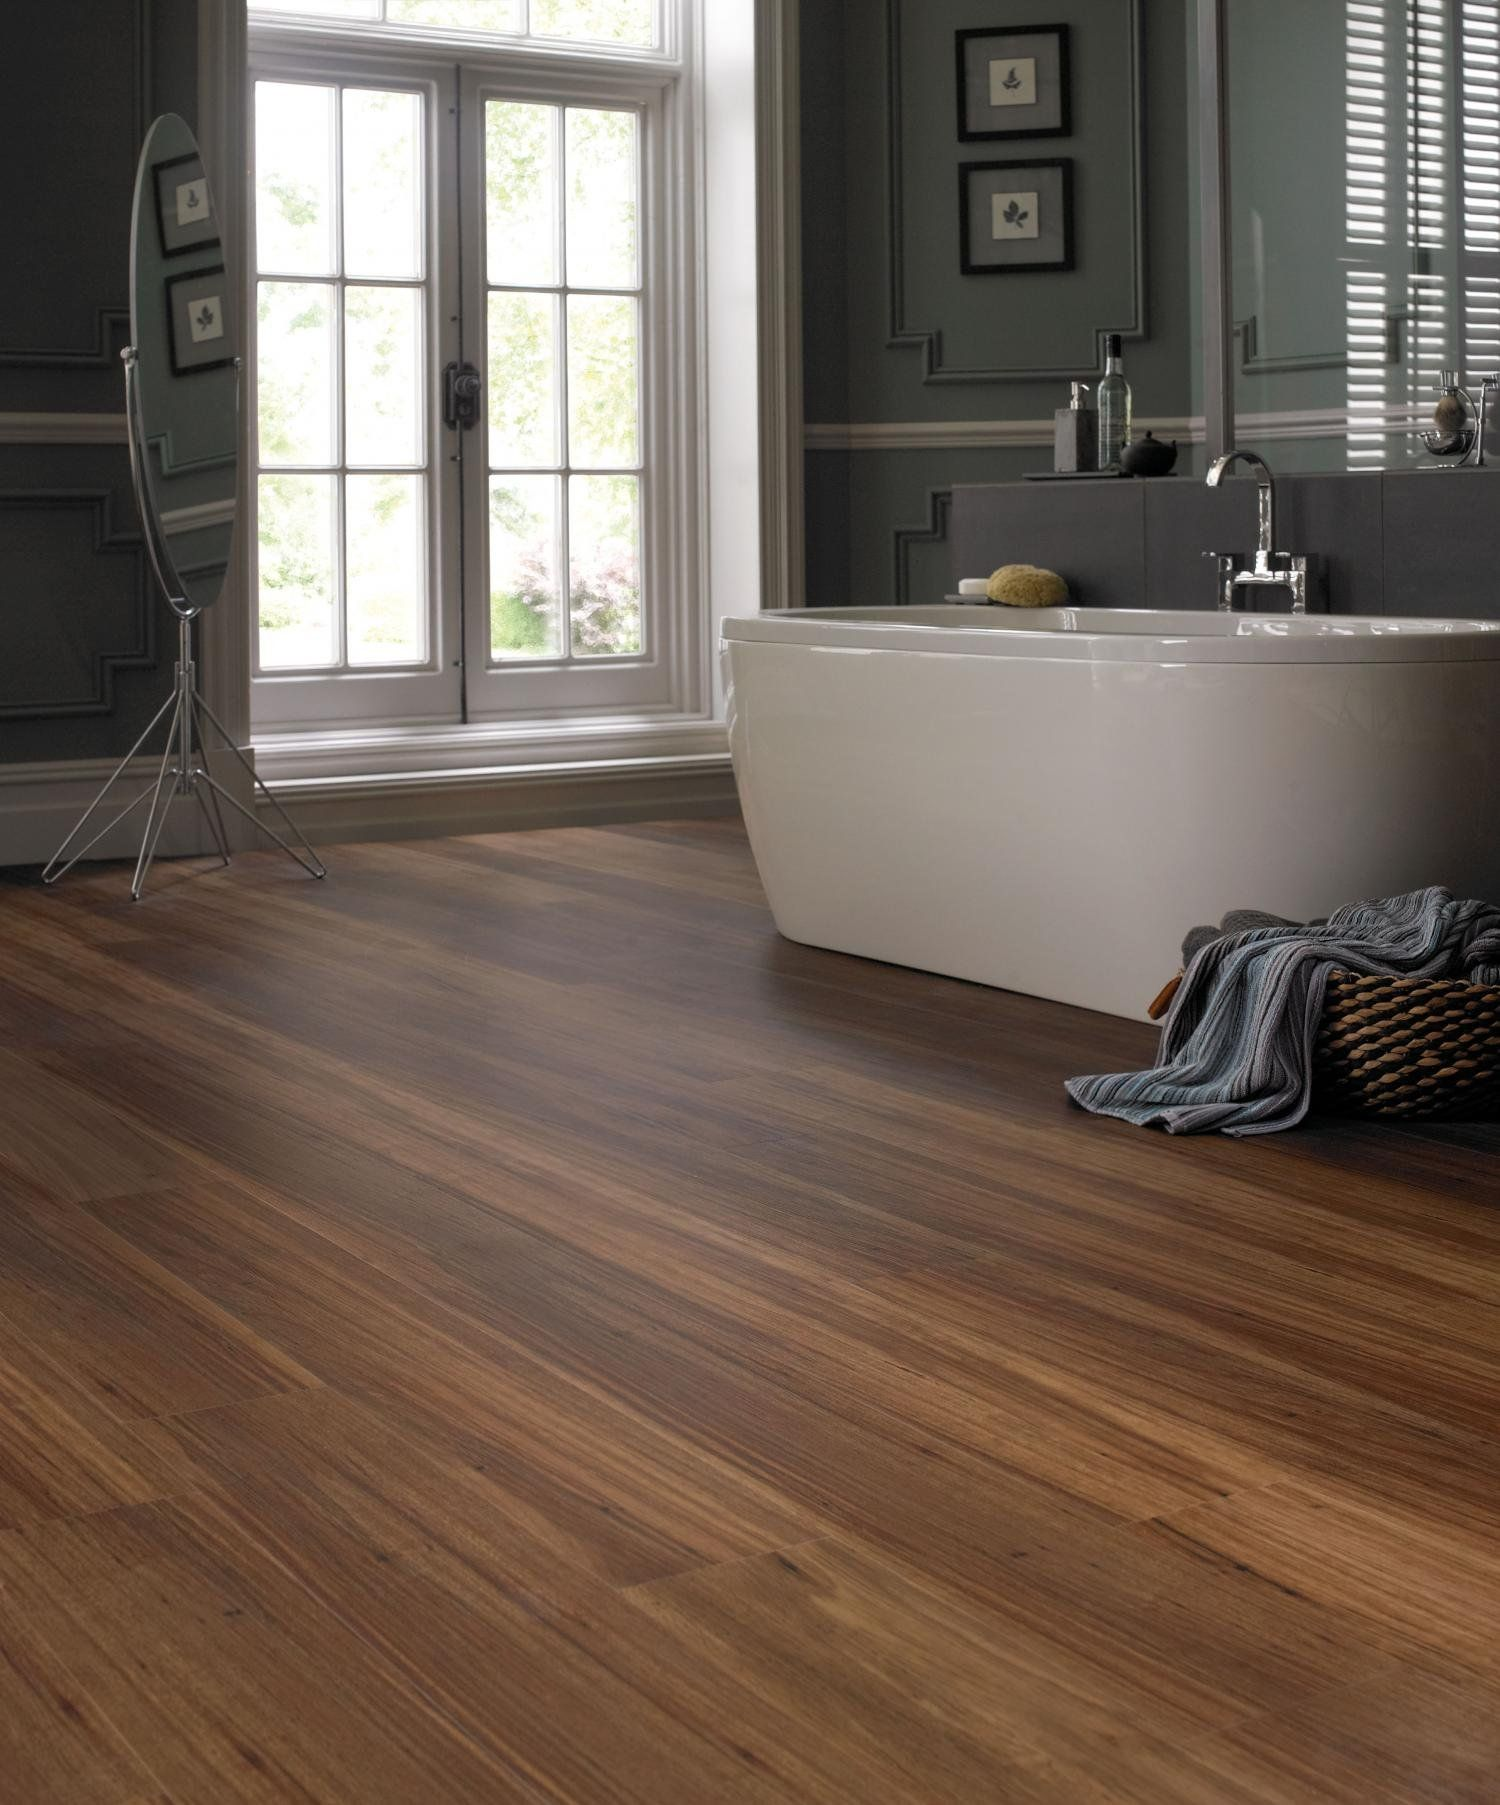 Spectacular wood look tile flooring bathroom design with for Bathroom flooring ideas